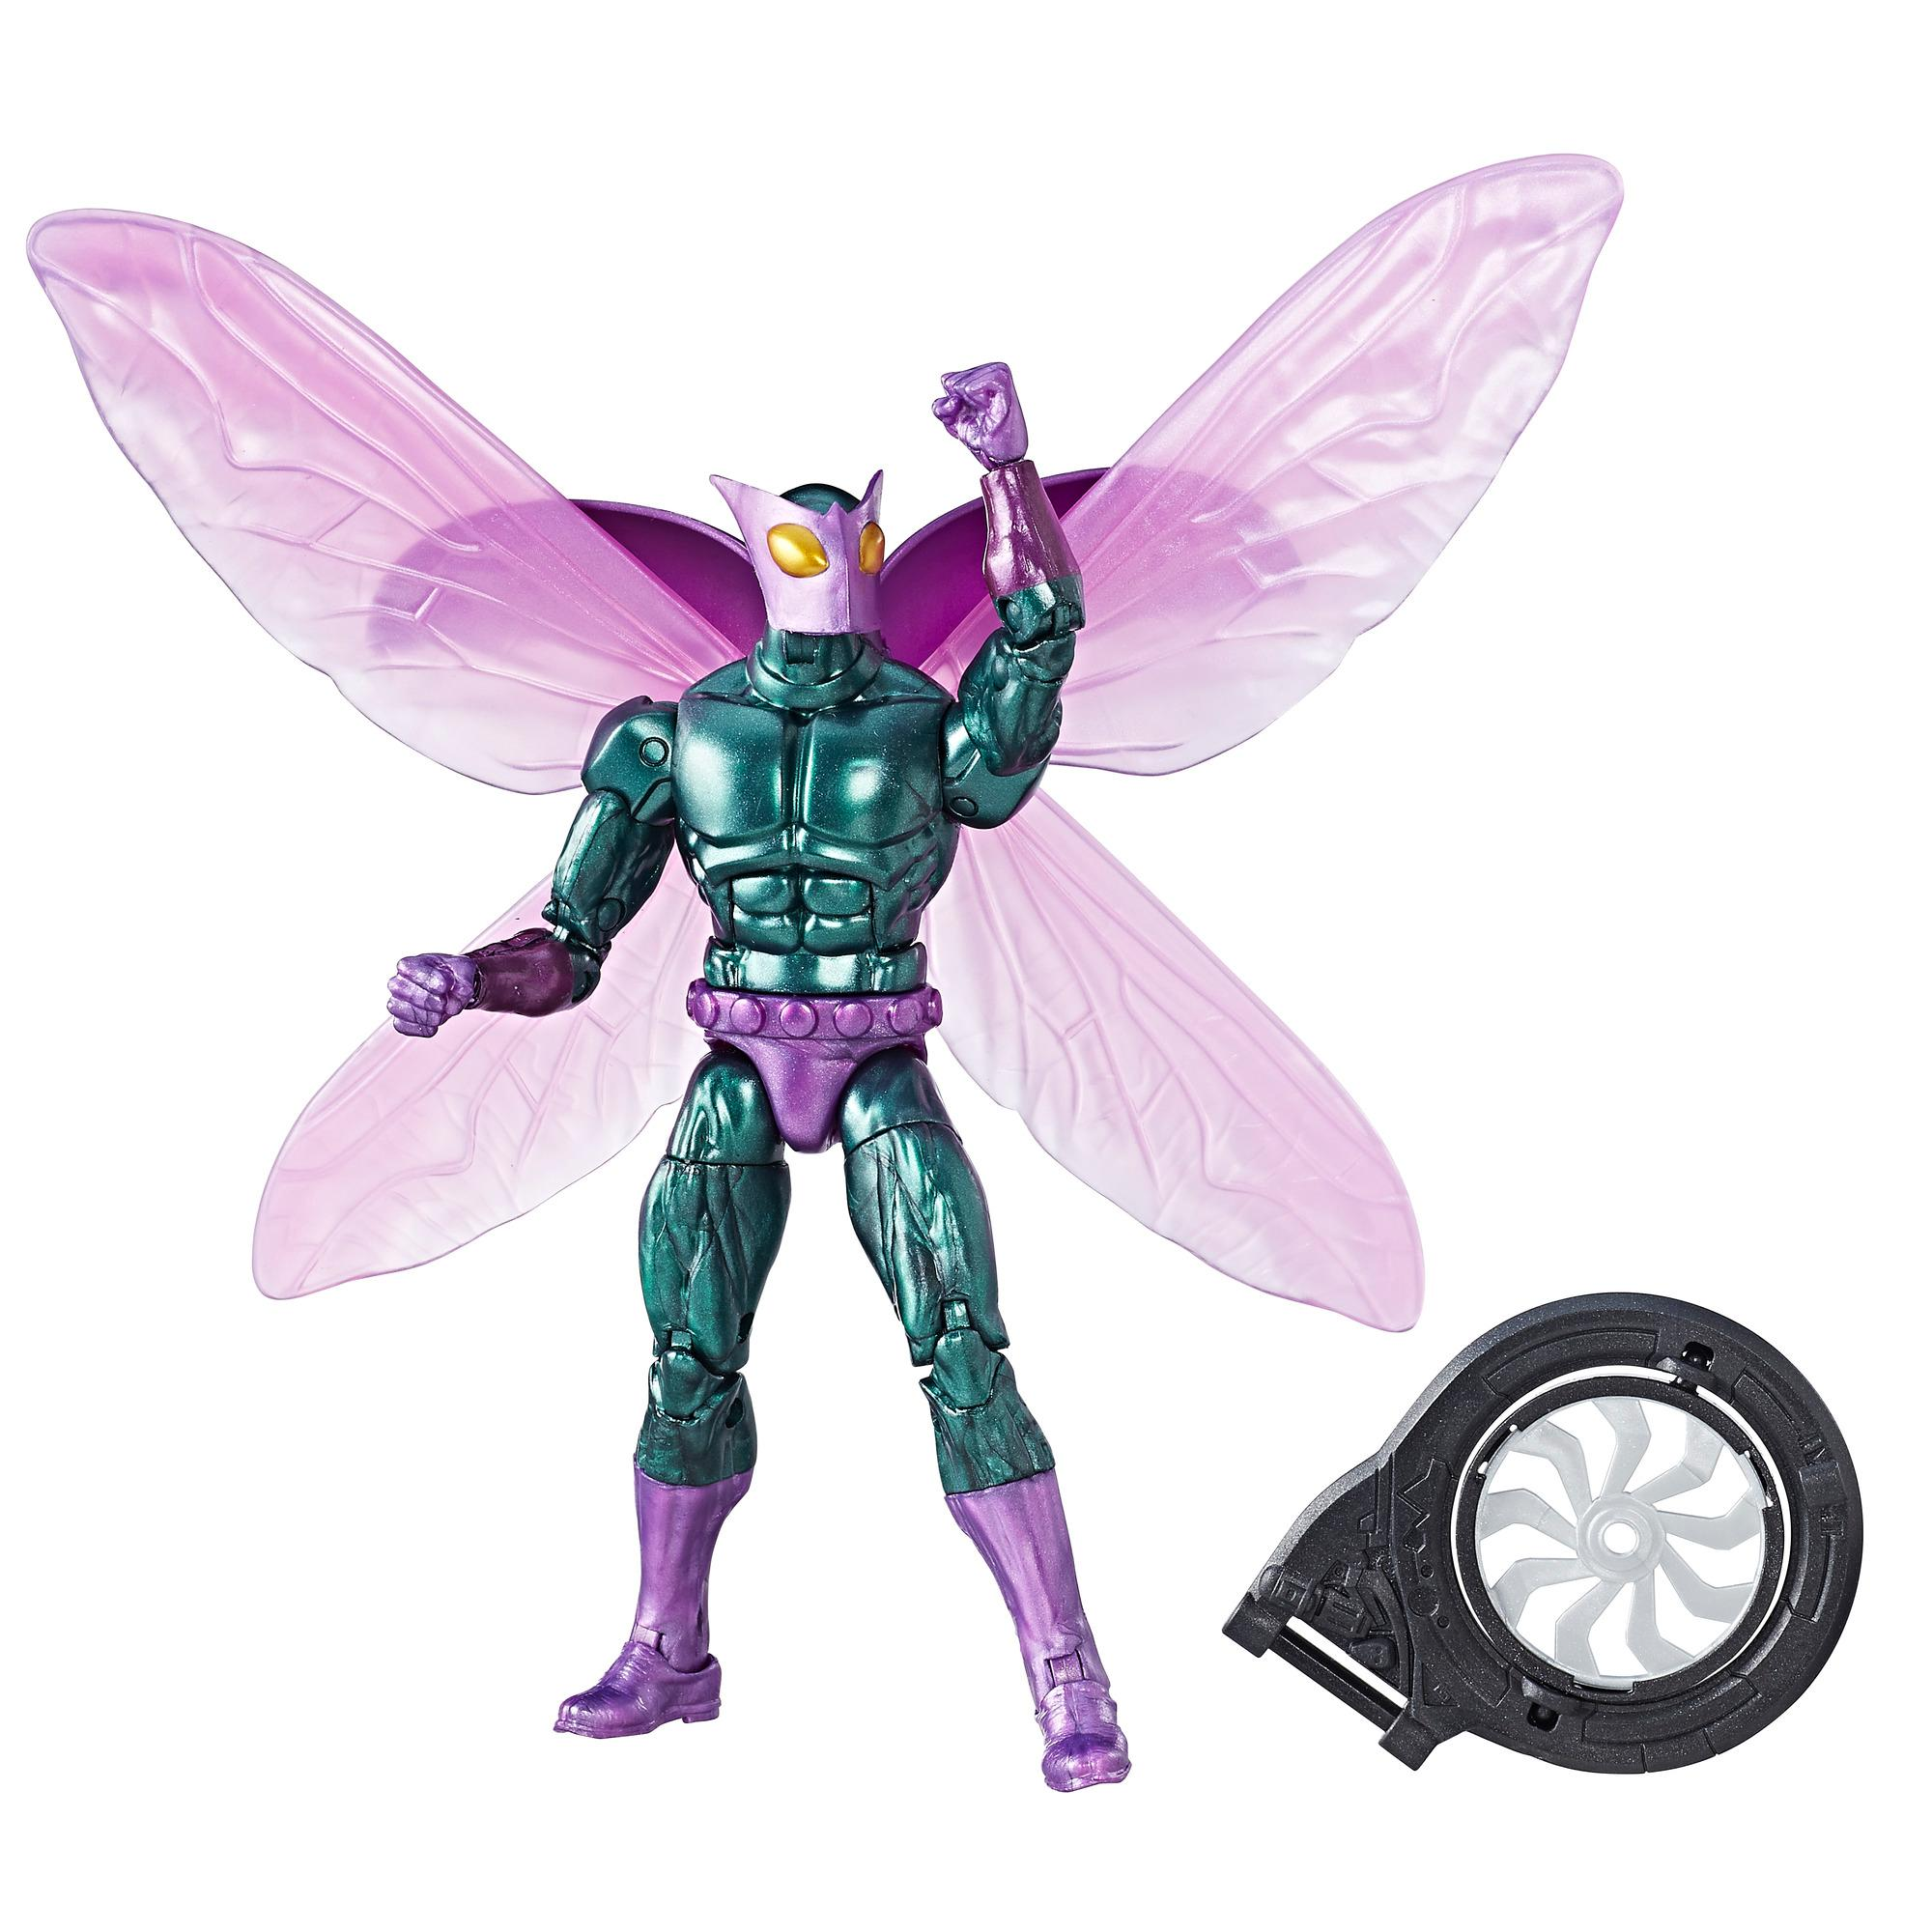 Marvel Spider-Man Legends Series - Sinistres vilains: Figurine Marvel's Beetle de 15 cm